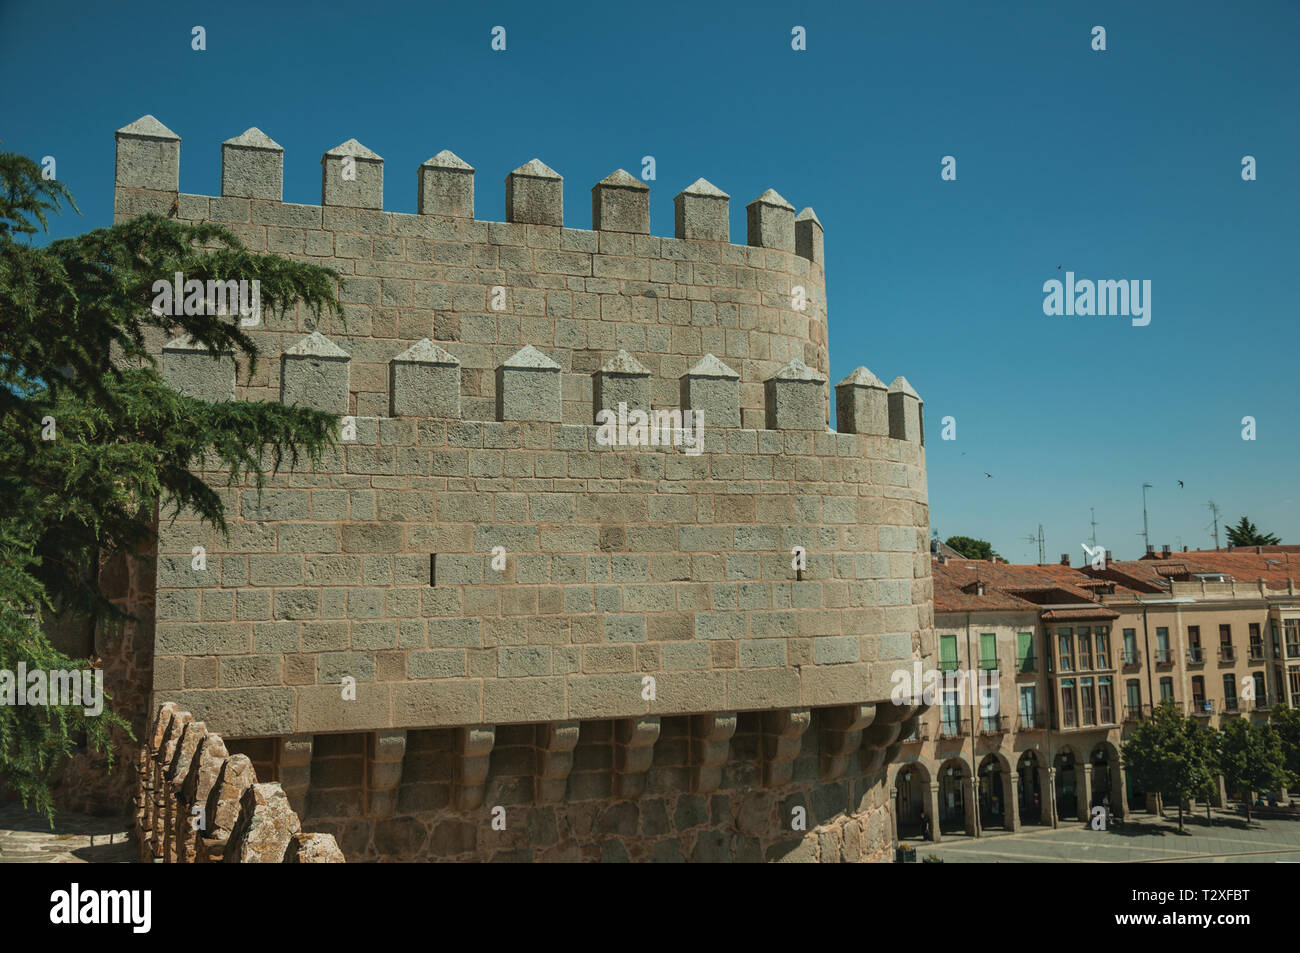 Battlement with merlons and crenels over stone tower and rooftops on buildings at Avila. With an imposing wall around the gothic city center in Spain. - Stock Image